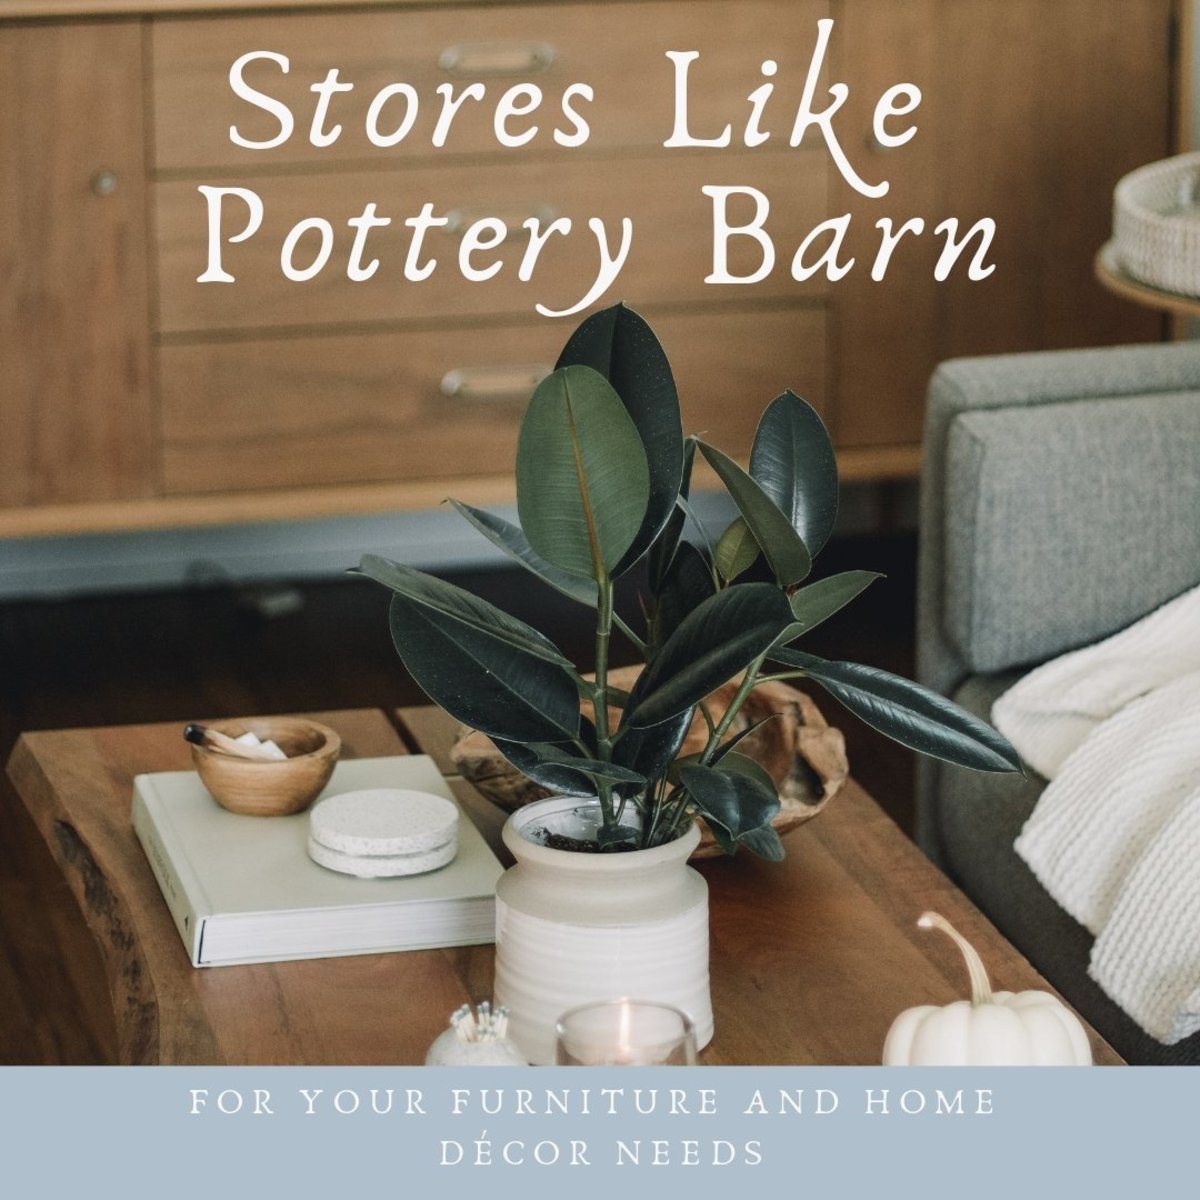 8 Great Stores Like Pottery Barn